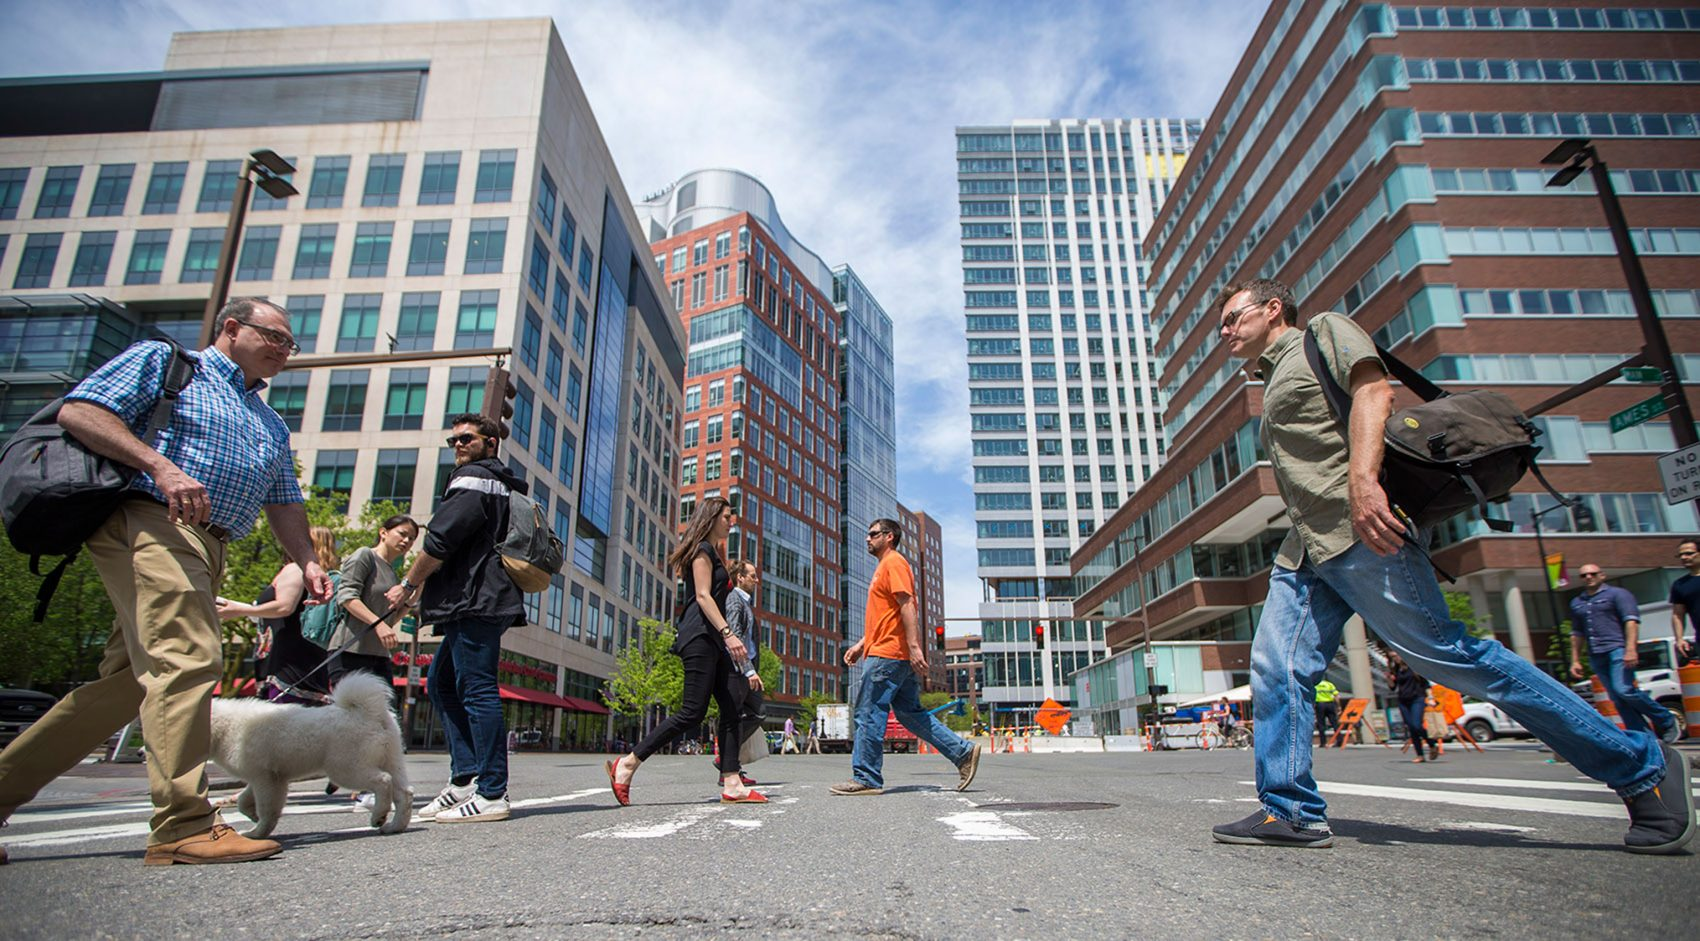 Kendall Square in Cambridge, home to hundreds of technology and life science companies, is among the business centers most affected by a new law governing noncompete agreements. (Jesse Costa/WBUR)